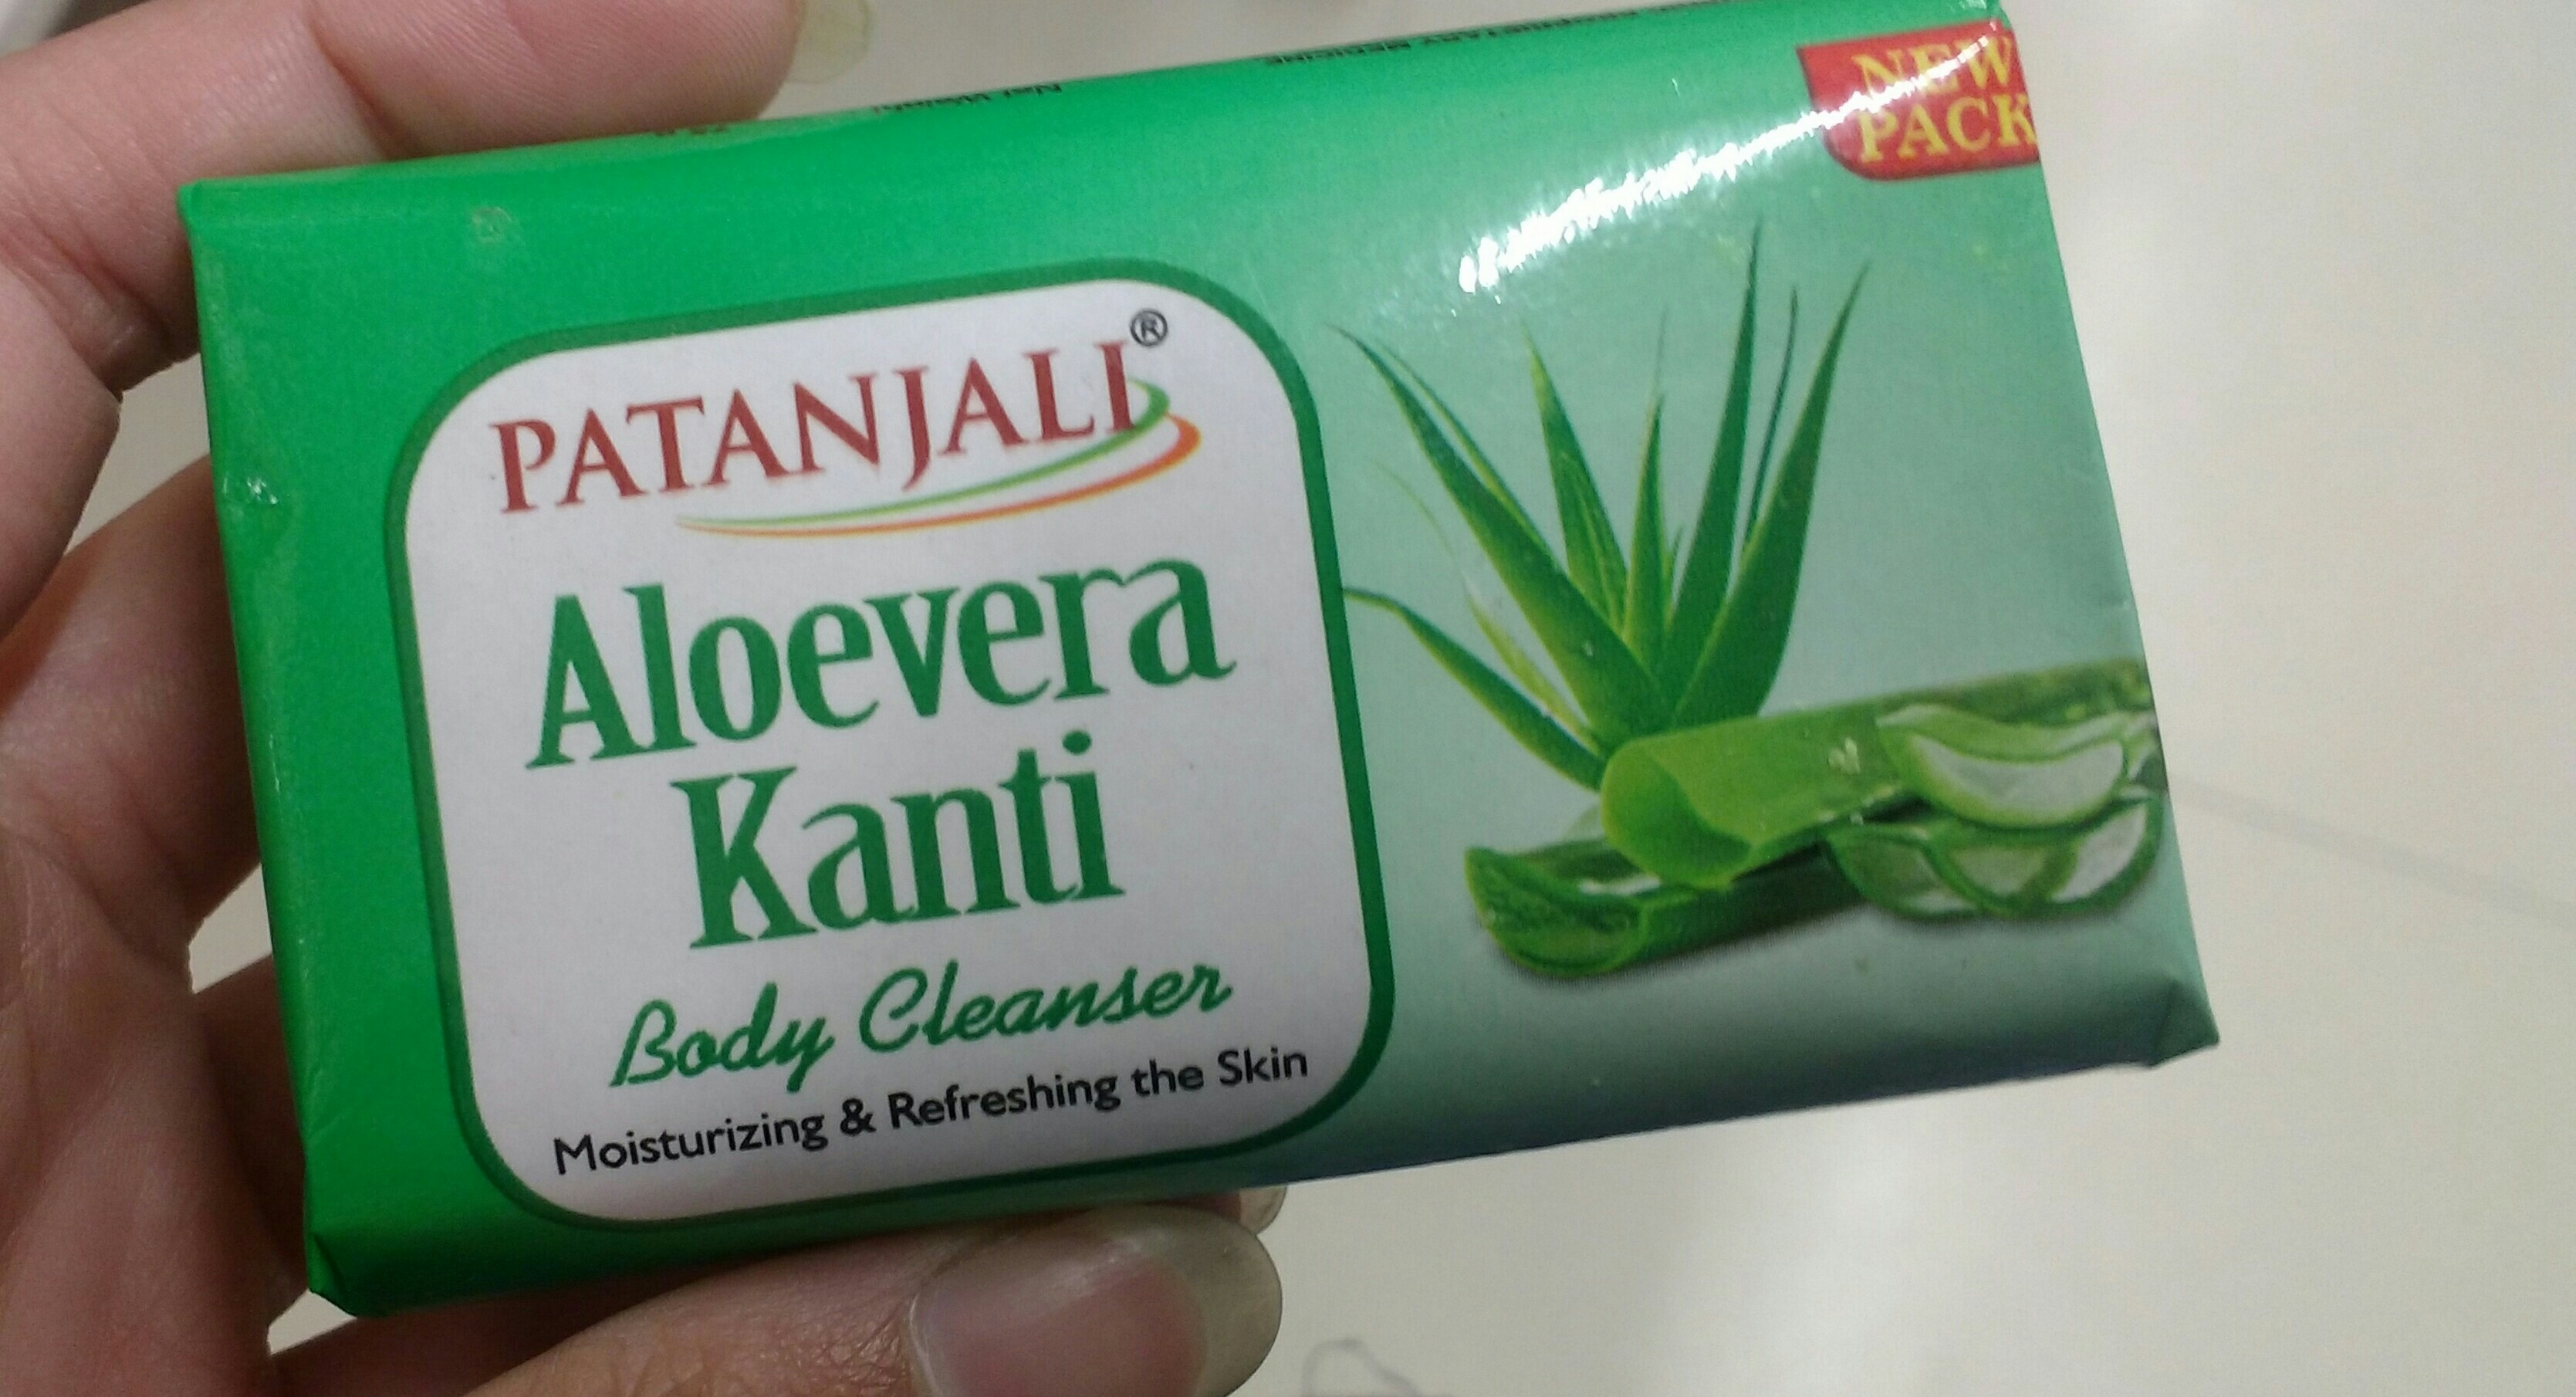 Patanjali Aloevera Kanti Body Cleanser -Aloe vera body cleanser-By ashwini_bhagat